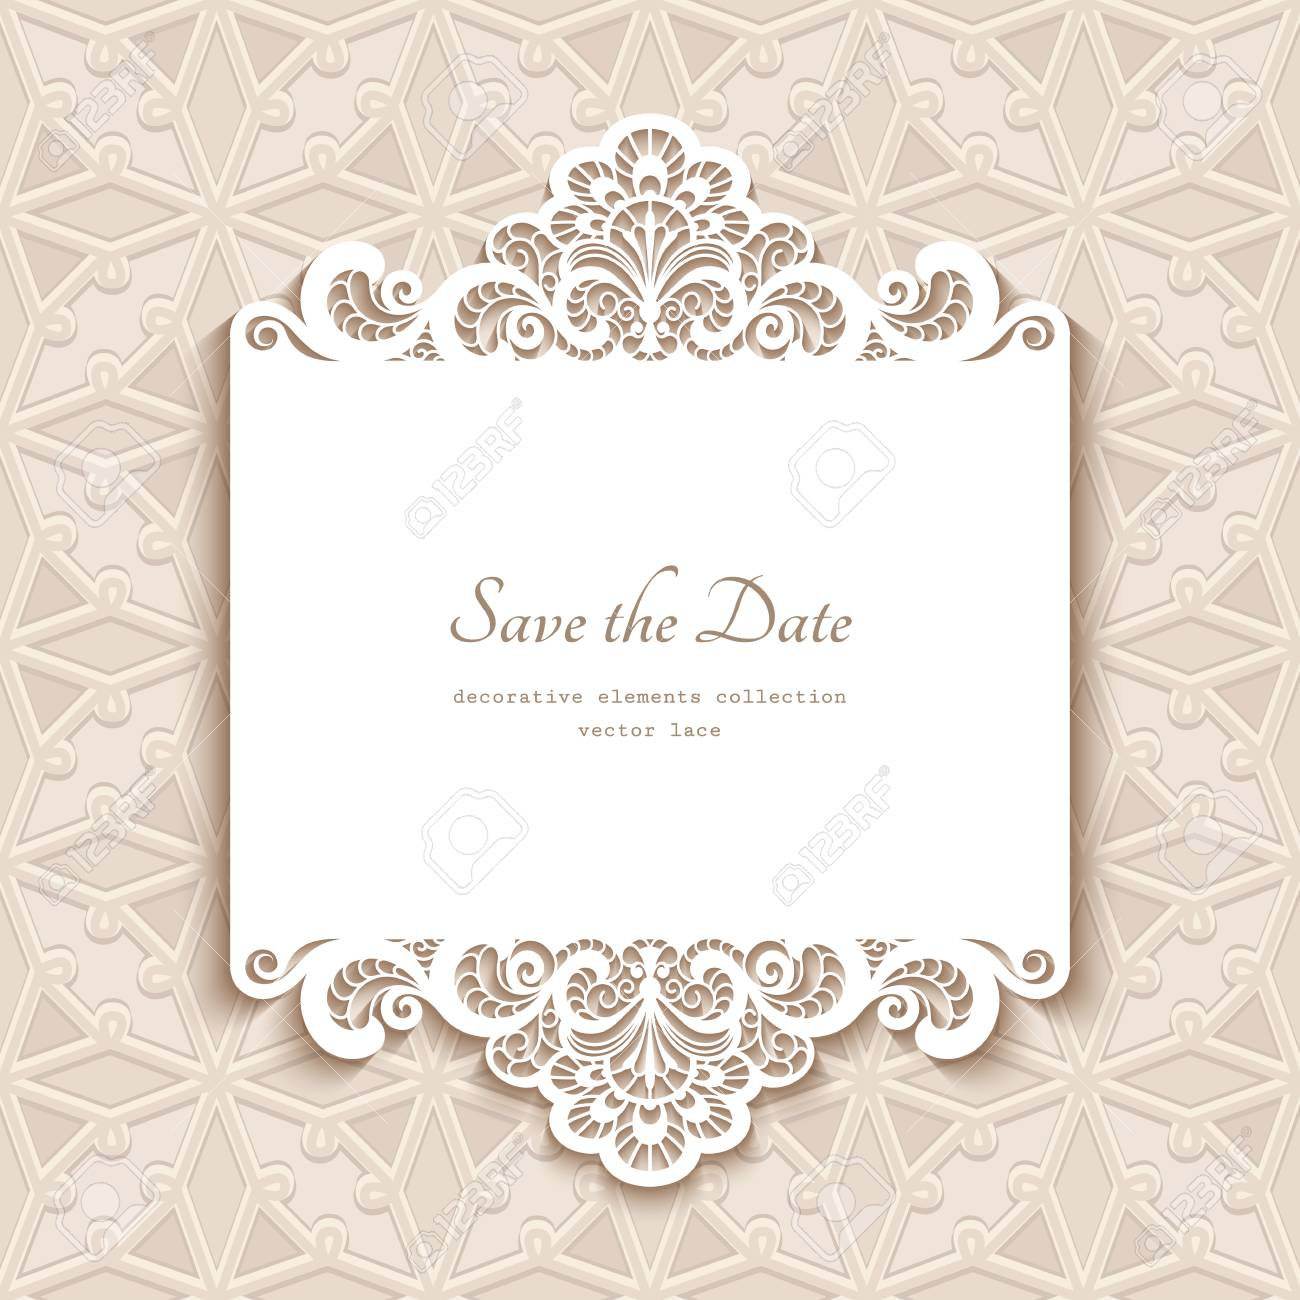 Cutout Paper Lace Frame Greeting Card Save The Date Or Wedding